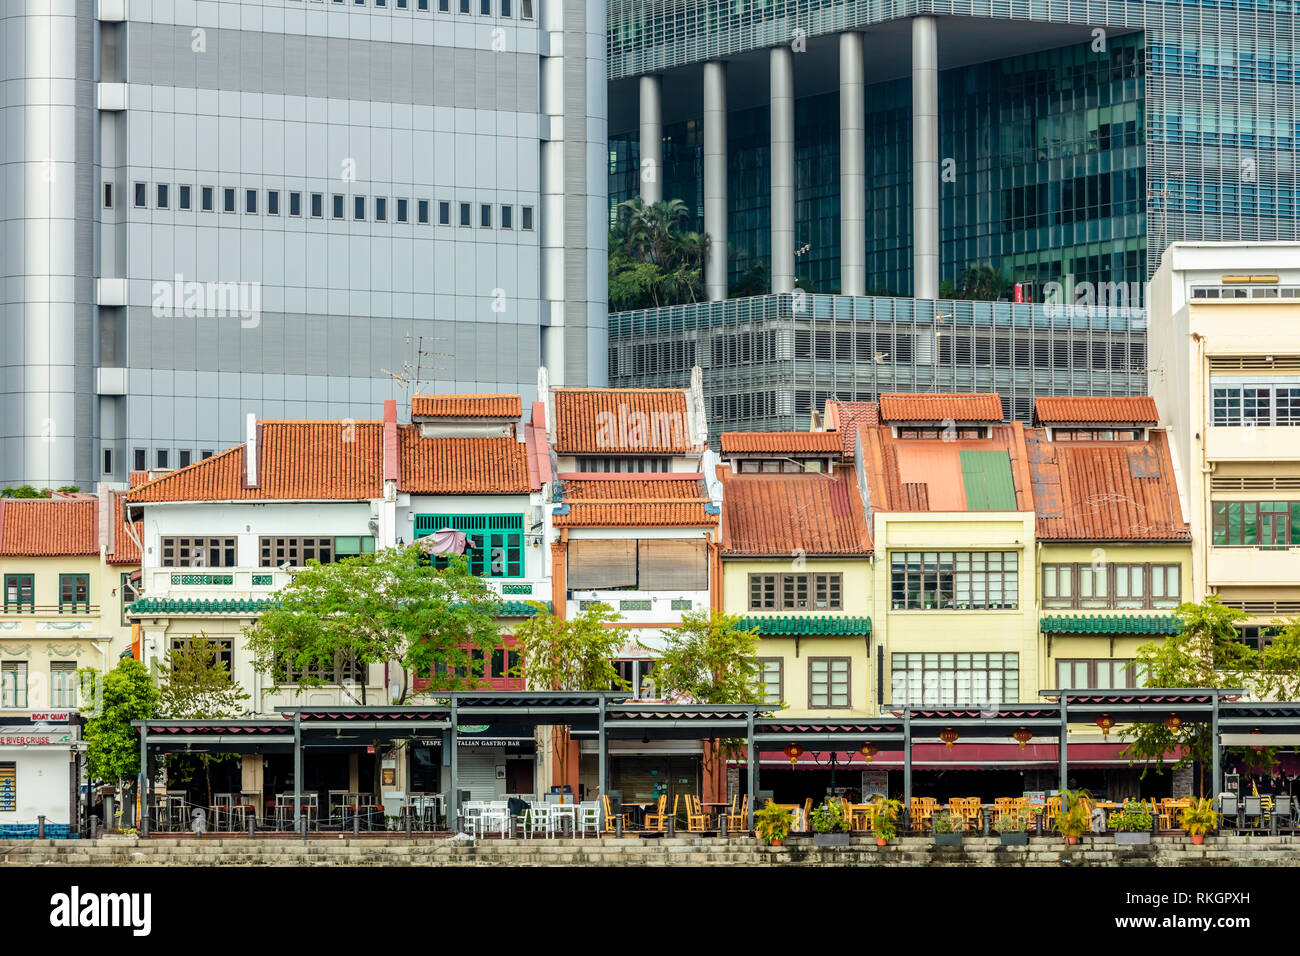 Tourist attraction Boat Quay at Raffles Place shophouse restaurants and bars with commercial office buildings during day time - Stock Image